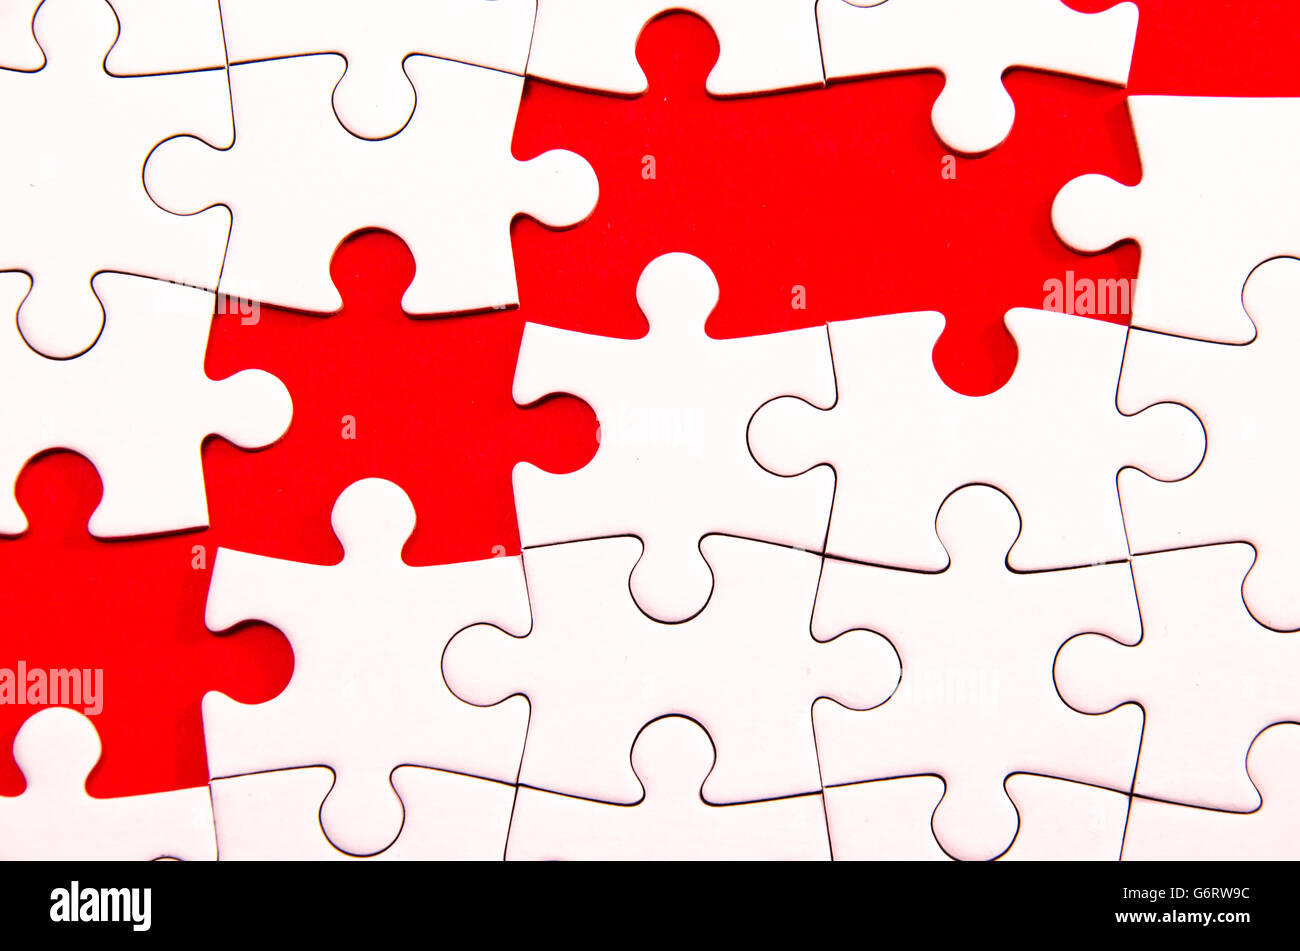 white jigsaw/puzzle wite some gaps over red background, symbol of problem solving - Stock Image